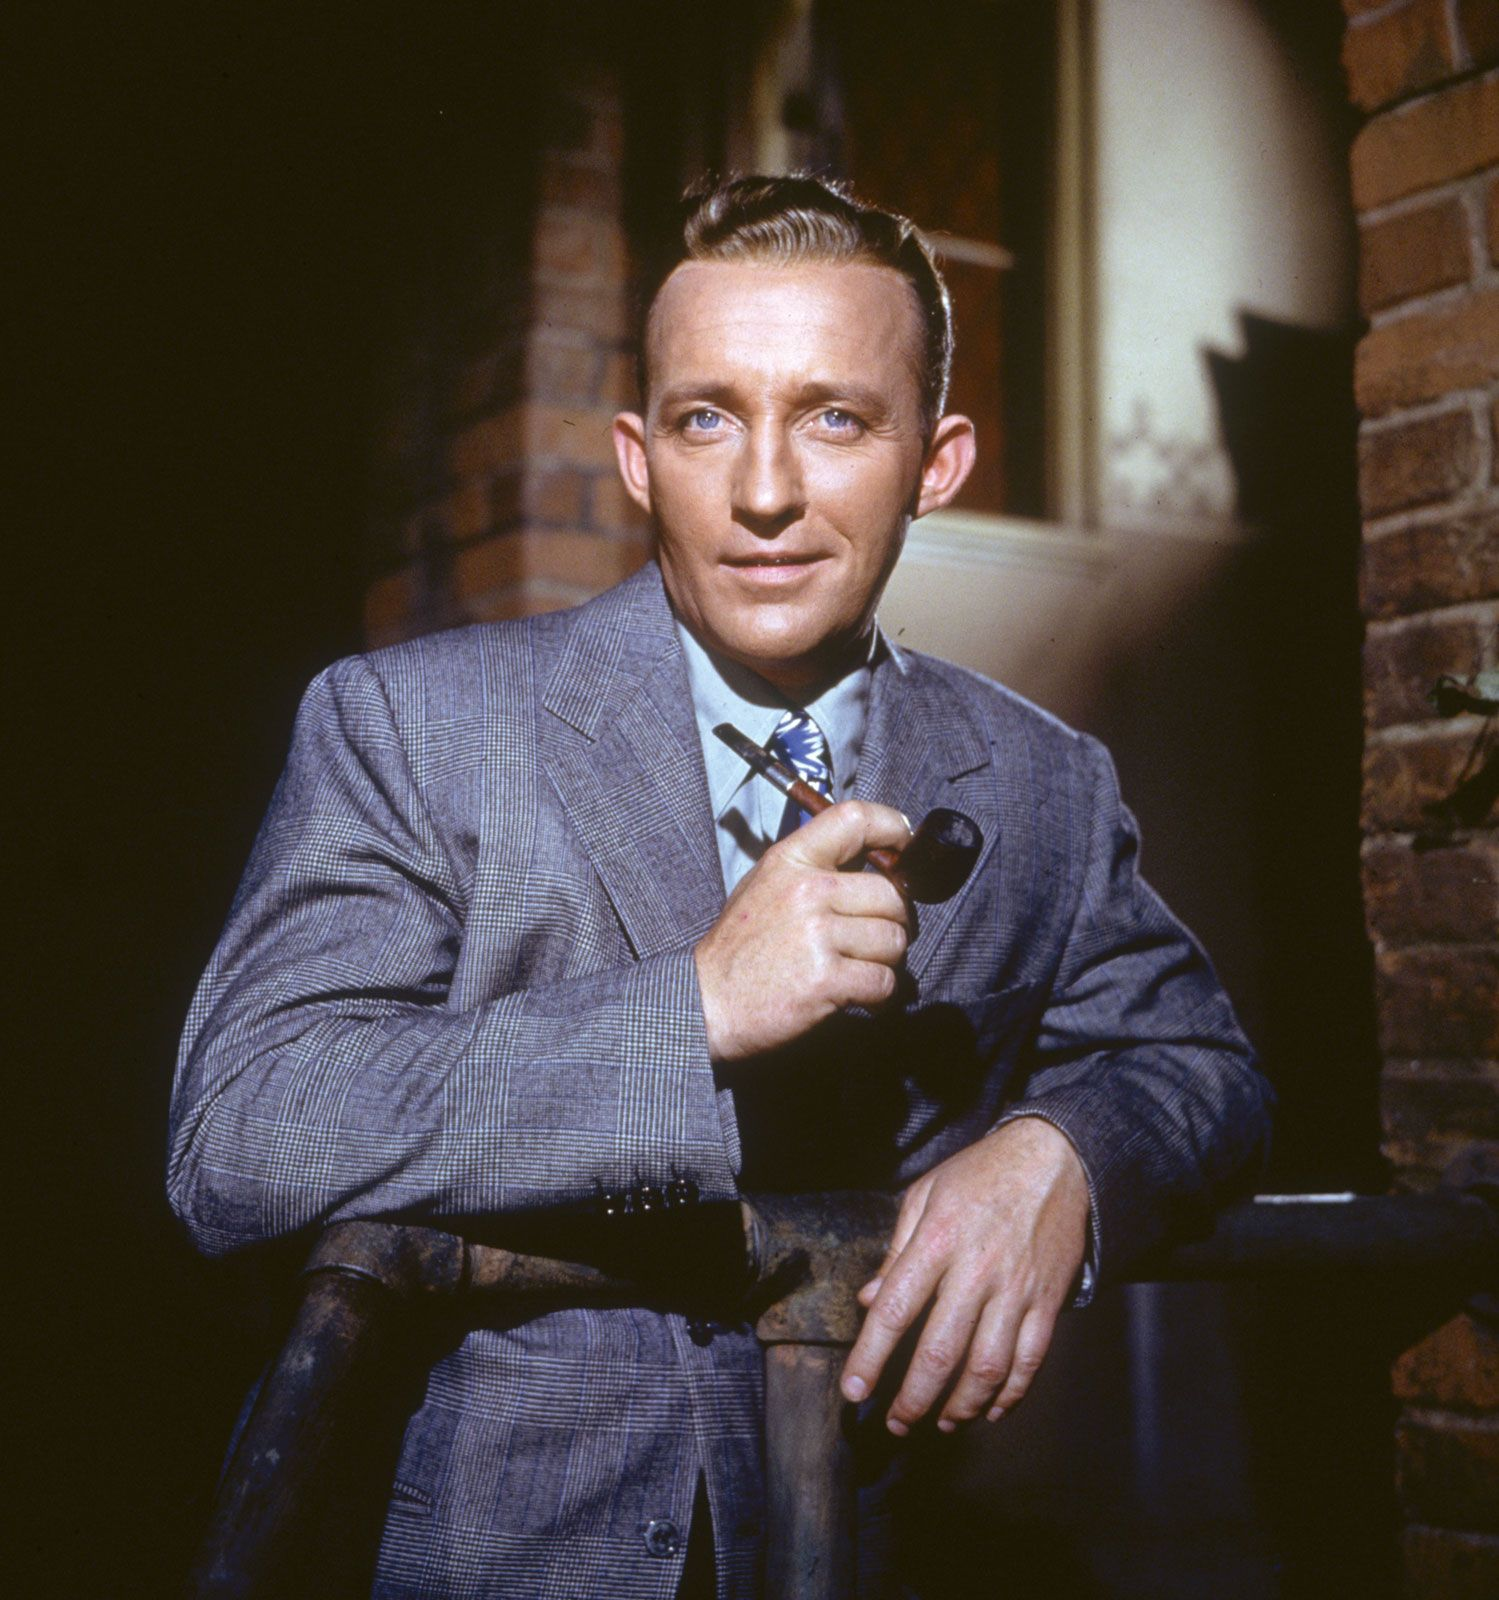 Bing Crosby - Love him in White Christmas! | Remarkable People ...